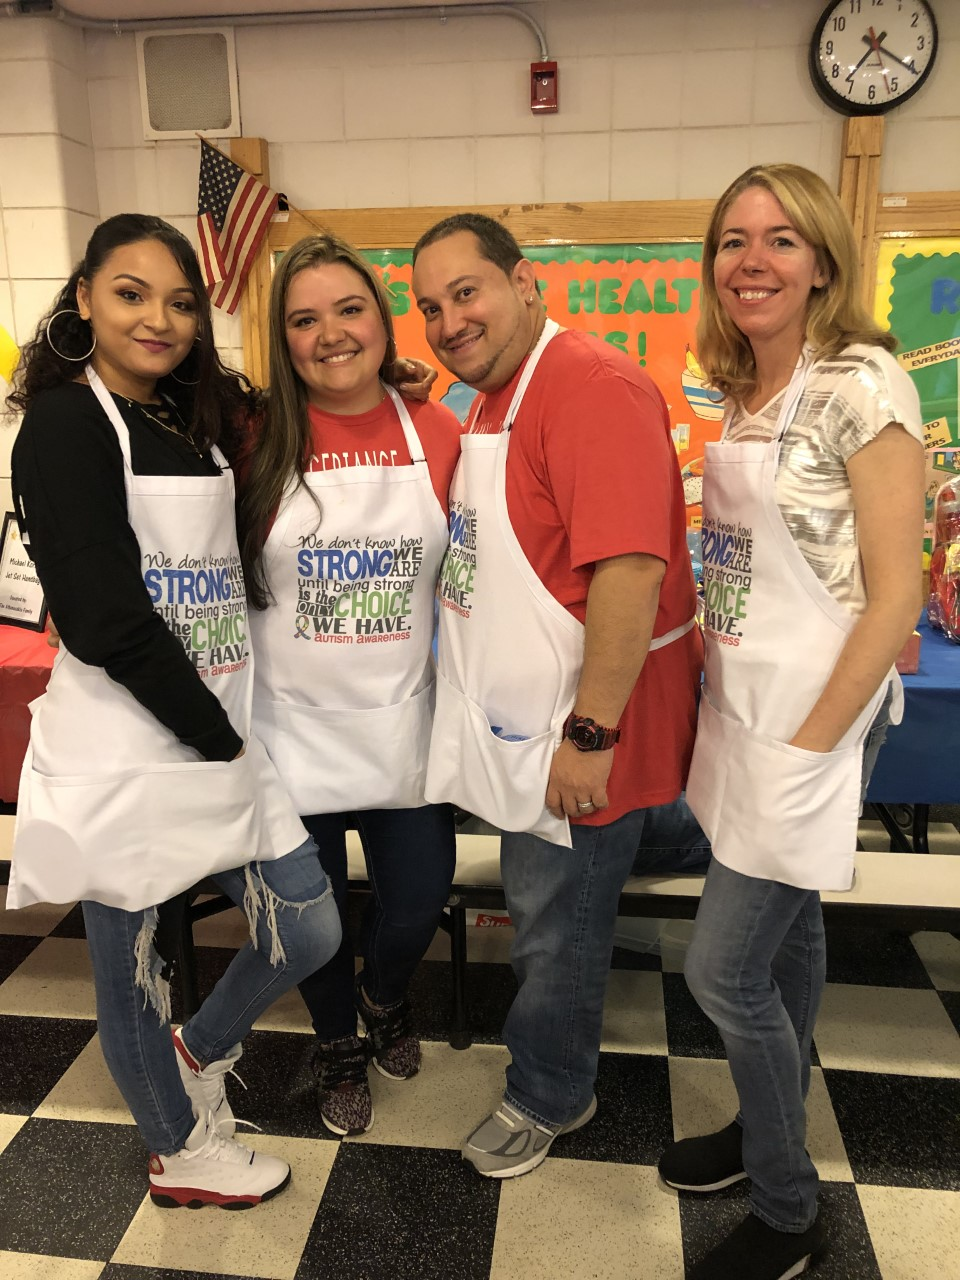 three women and a man smiling wearing aprons